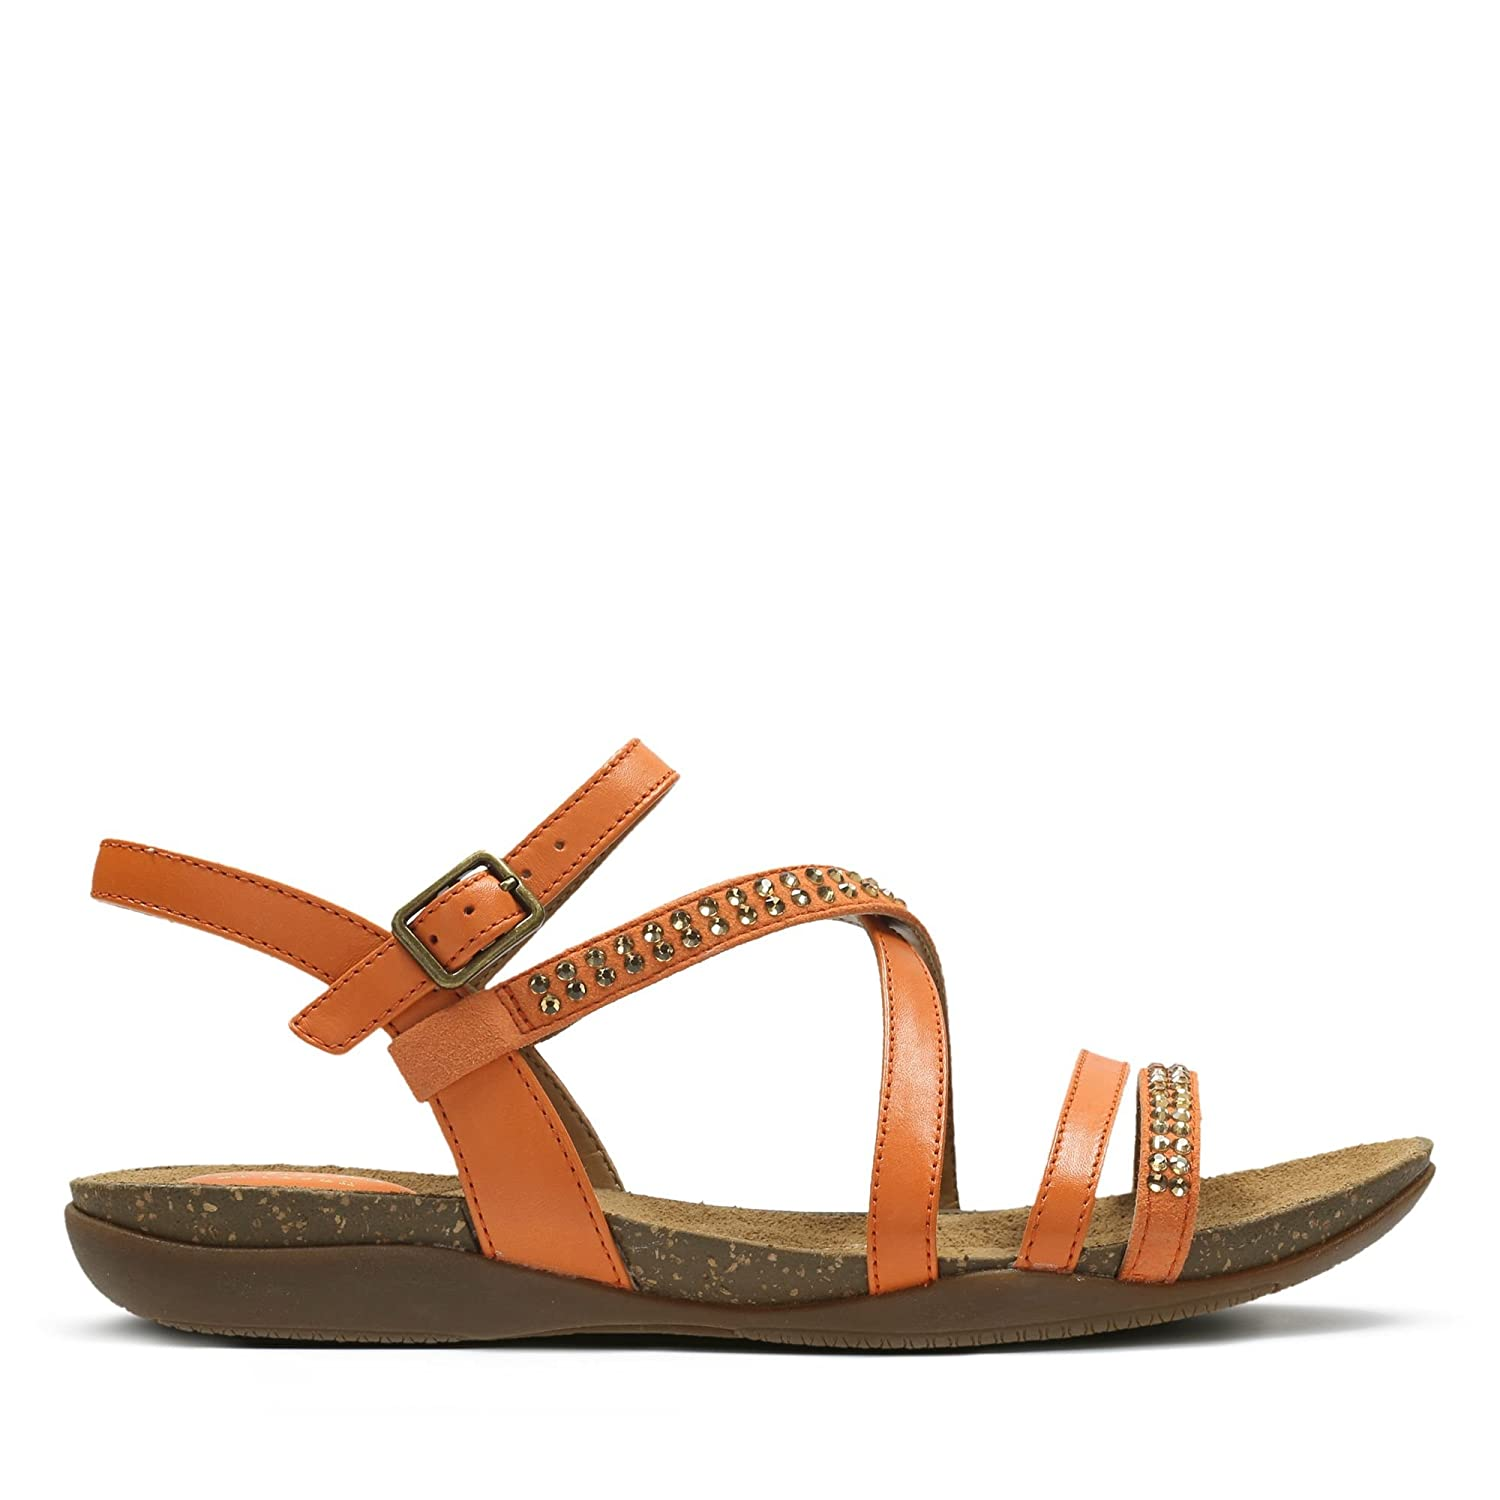 5c0dde27a Clarks Autumn Peace Leather Synthetic Sandals in Orange  Amazon.co.uk  Shoes    Bags